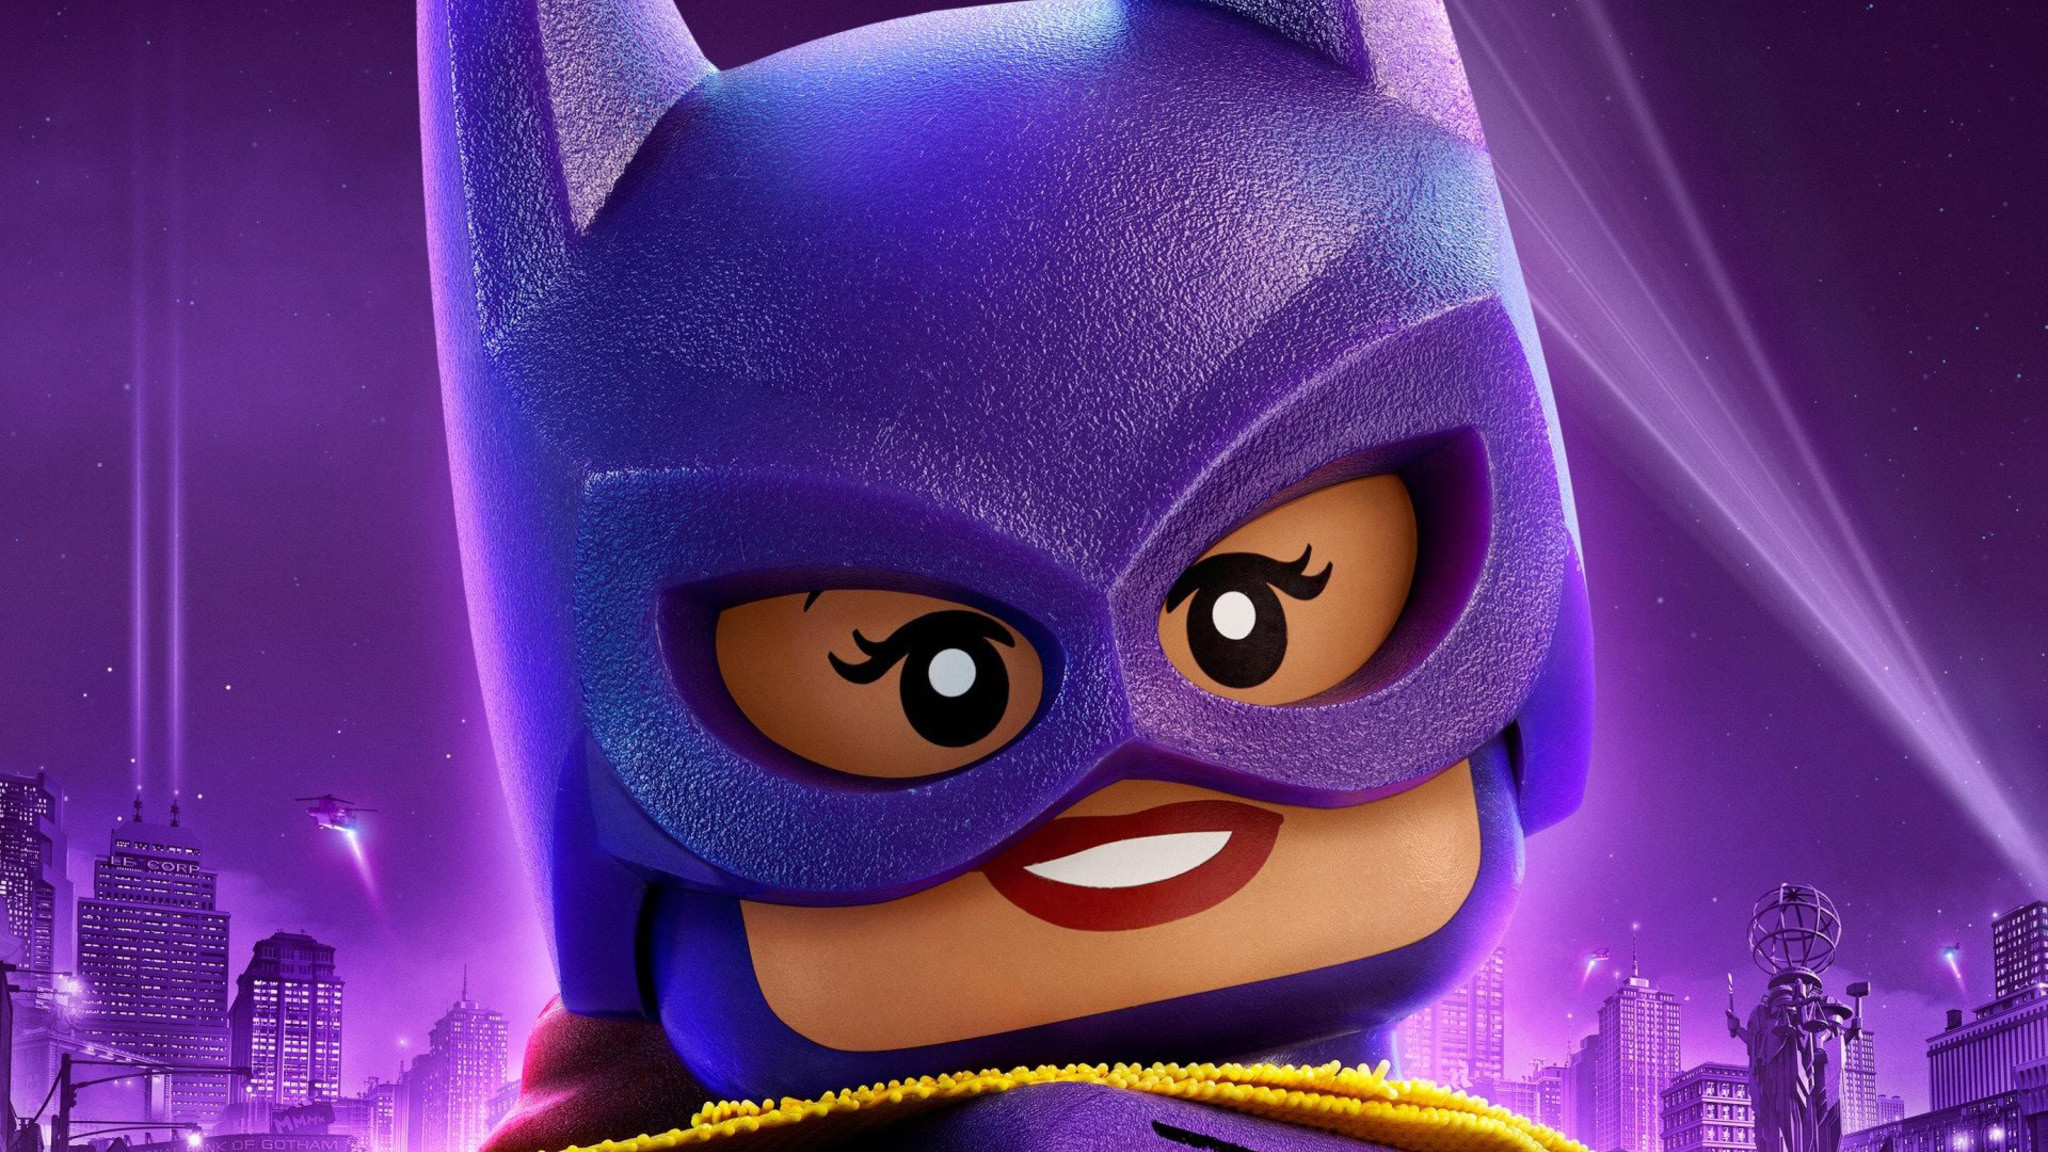 2048x1152 batgirl-the-lego-batman-qhd.jpg